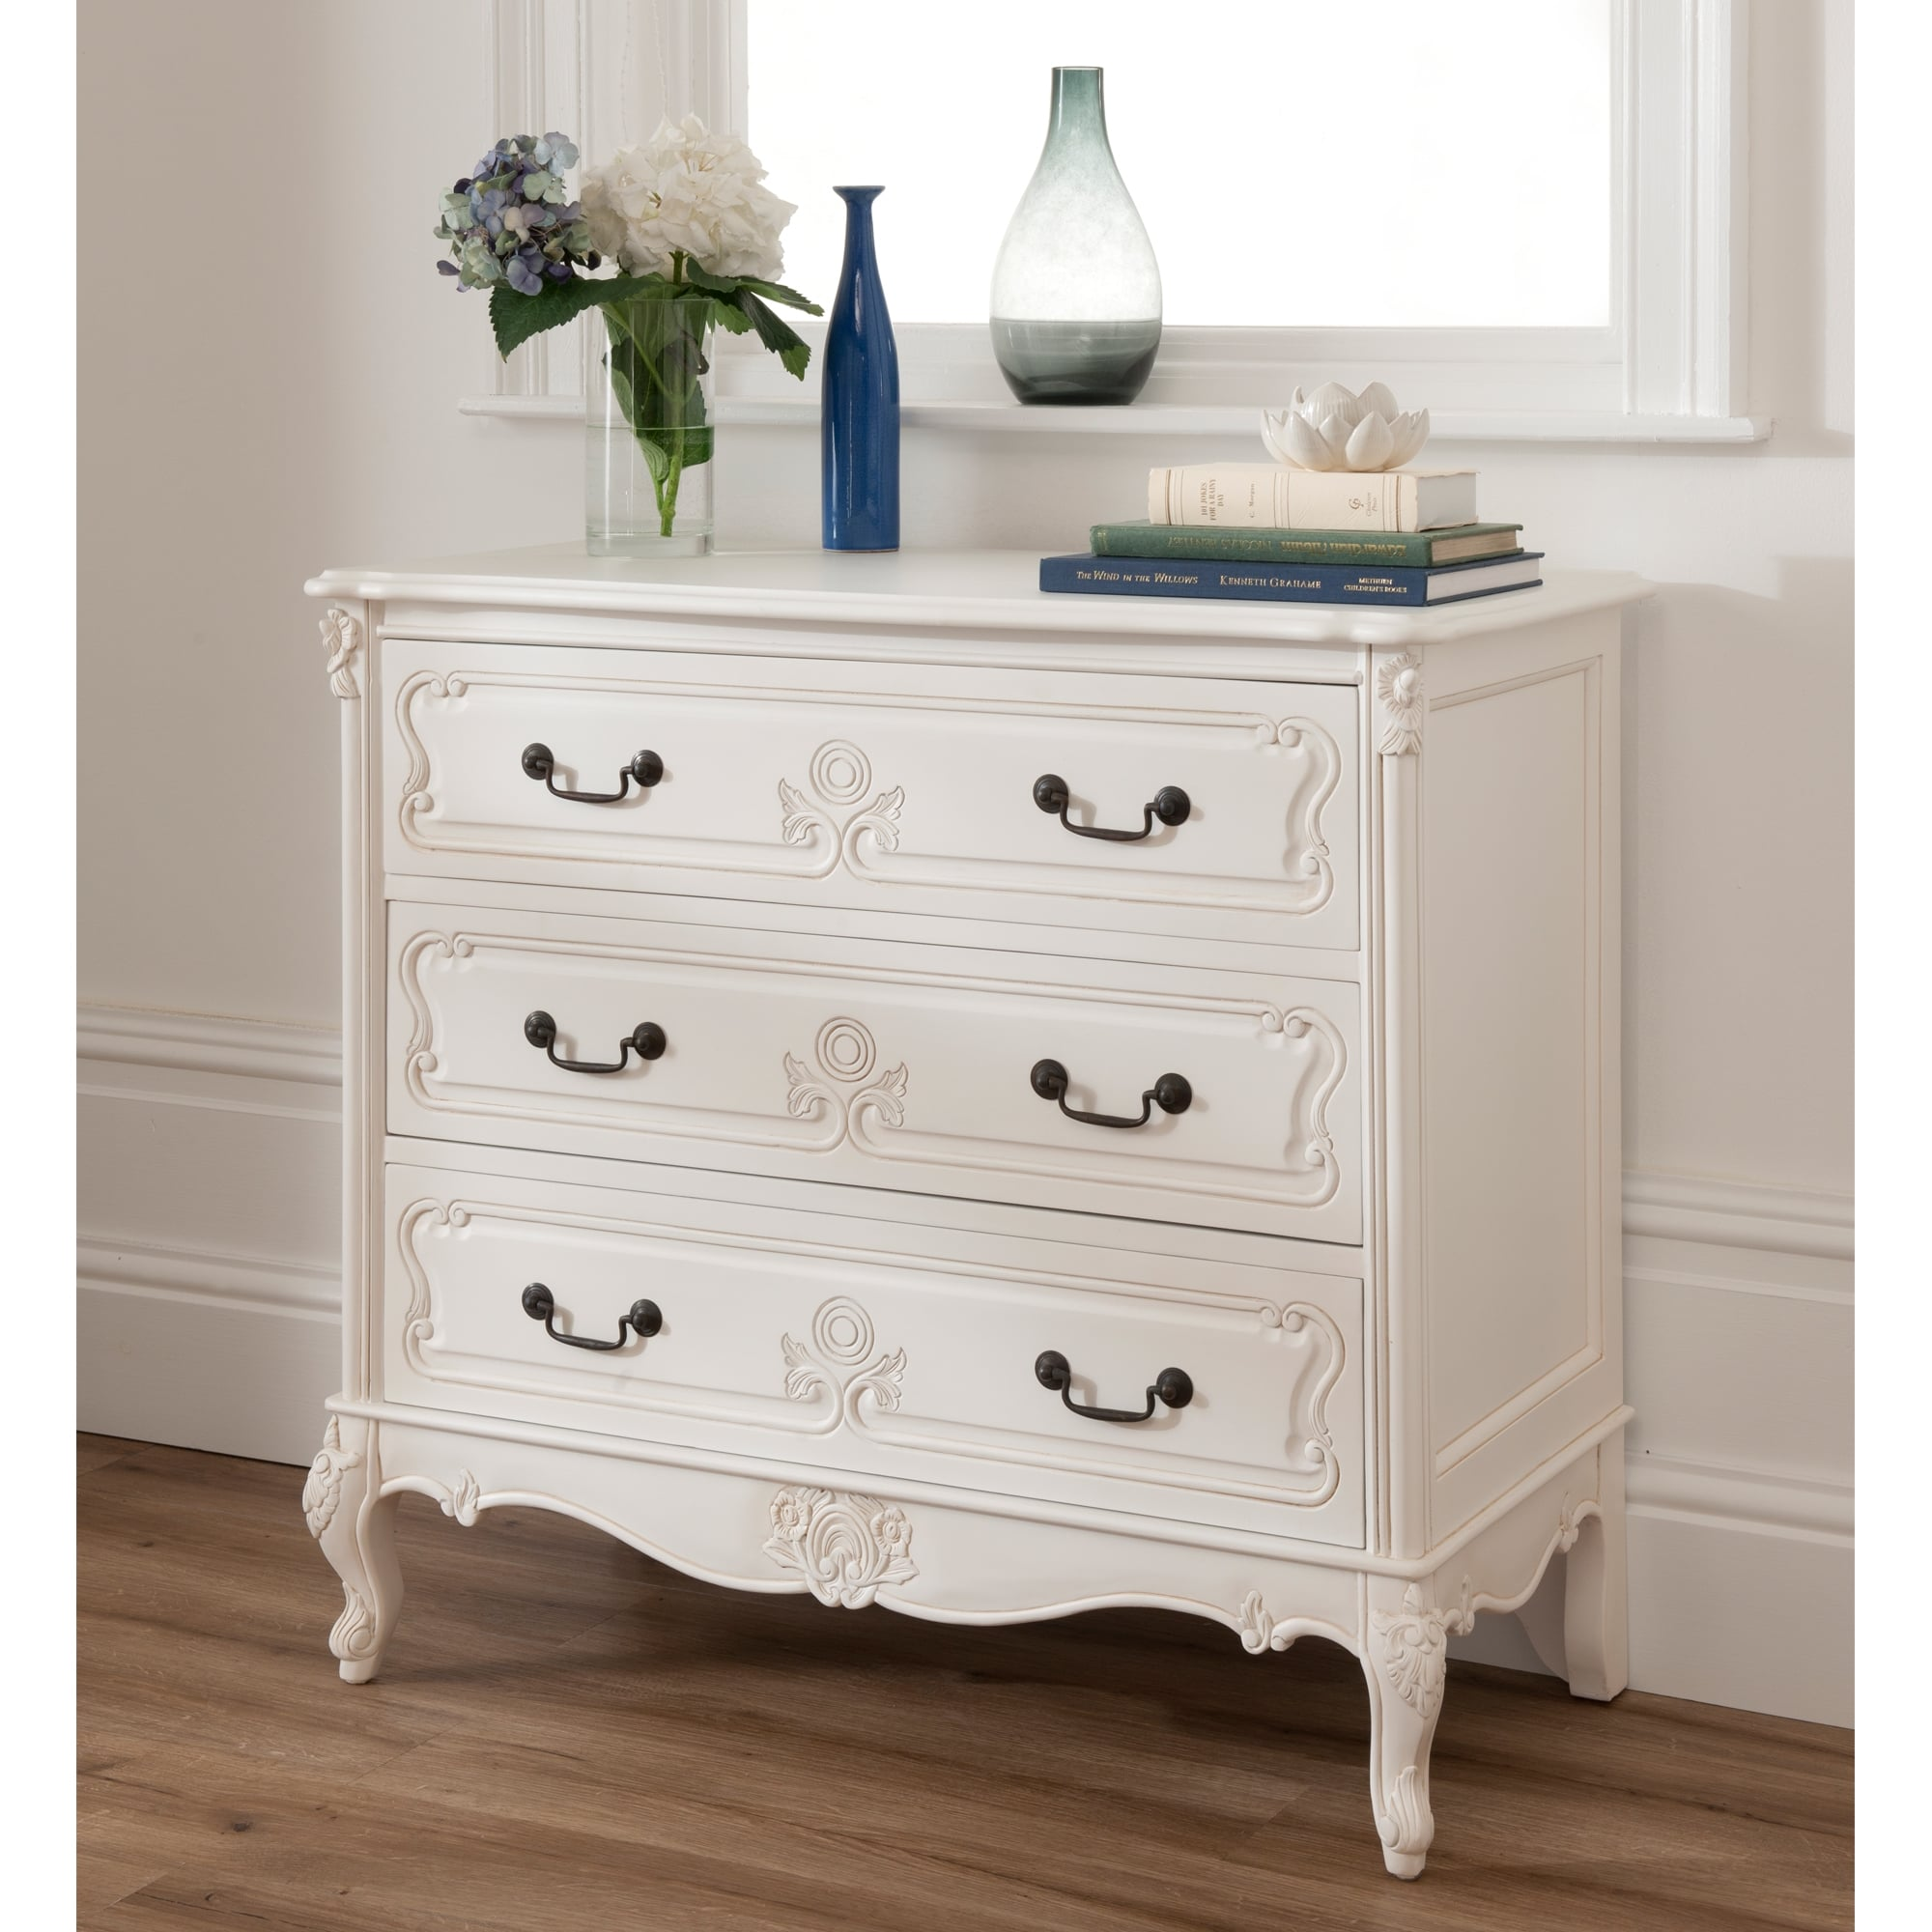 Baroque antique french white chest homesdirect365 for Furniture 365 direct